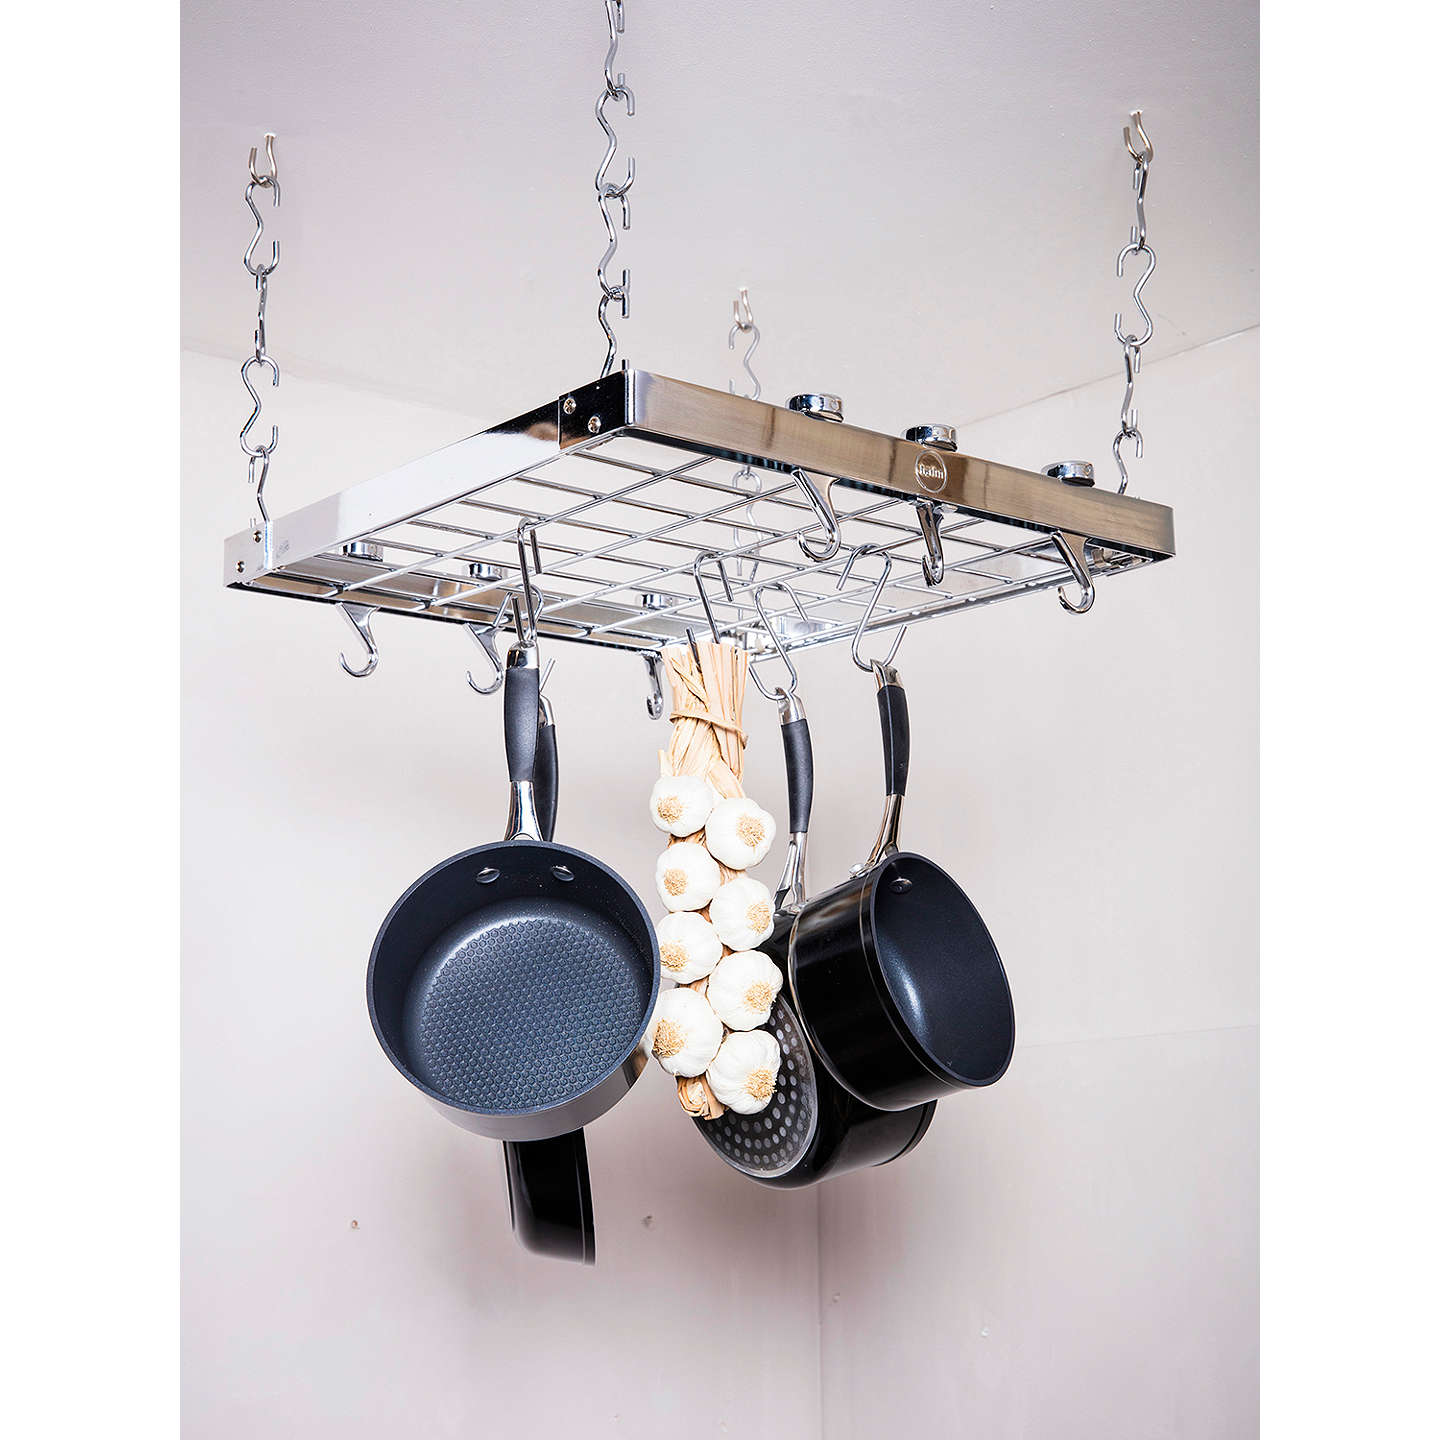 com pan with shld url shop zesproka pot rack wall net kitchen black hooks getimage your